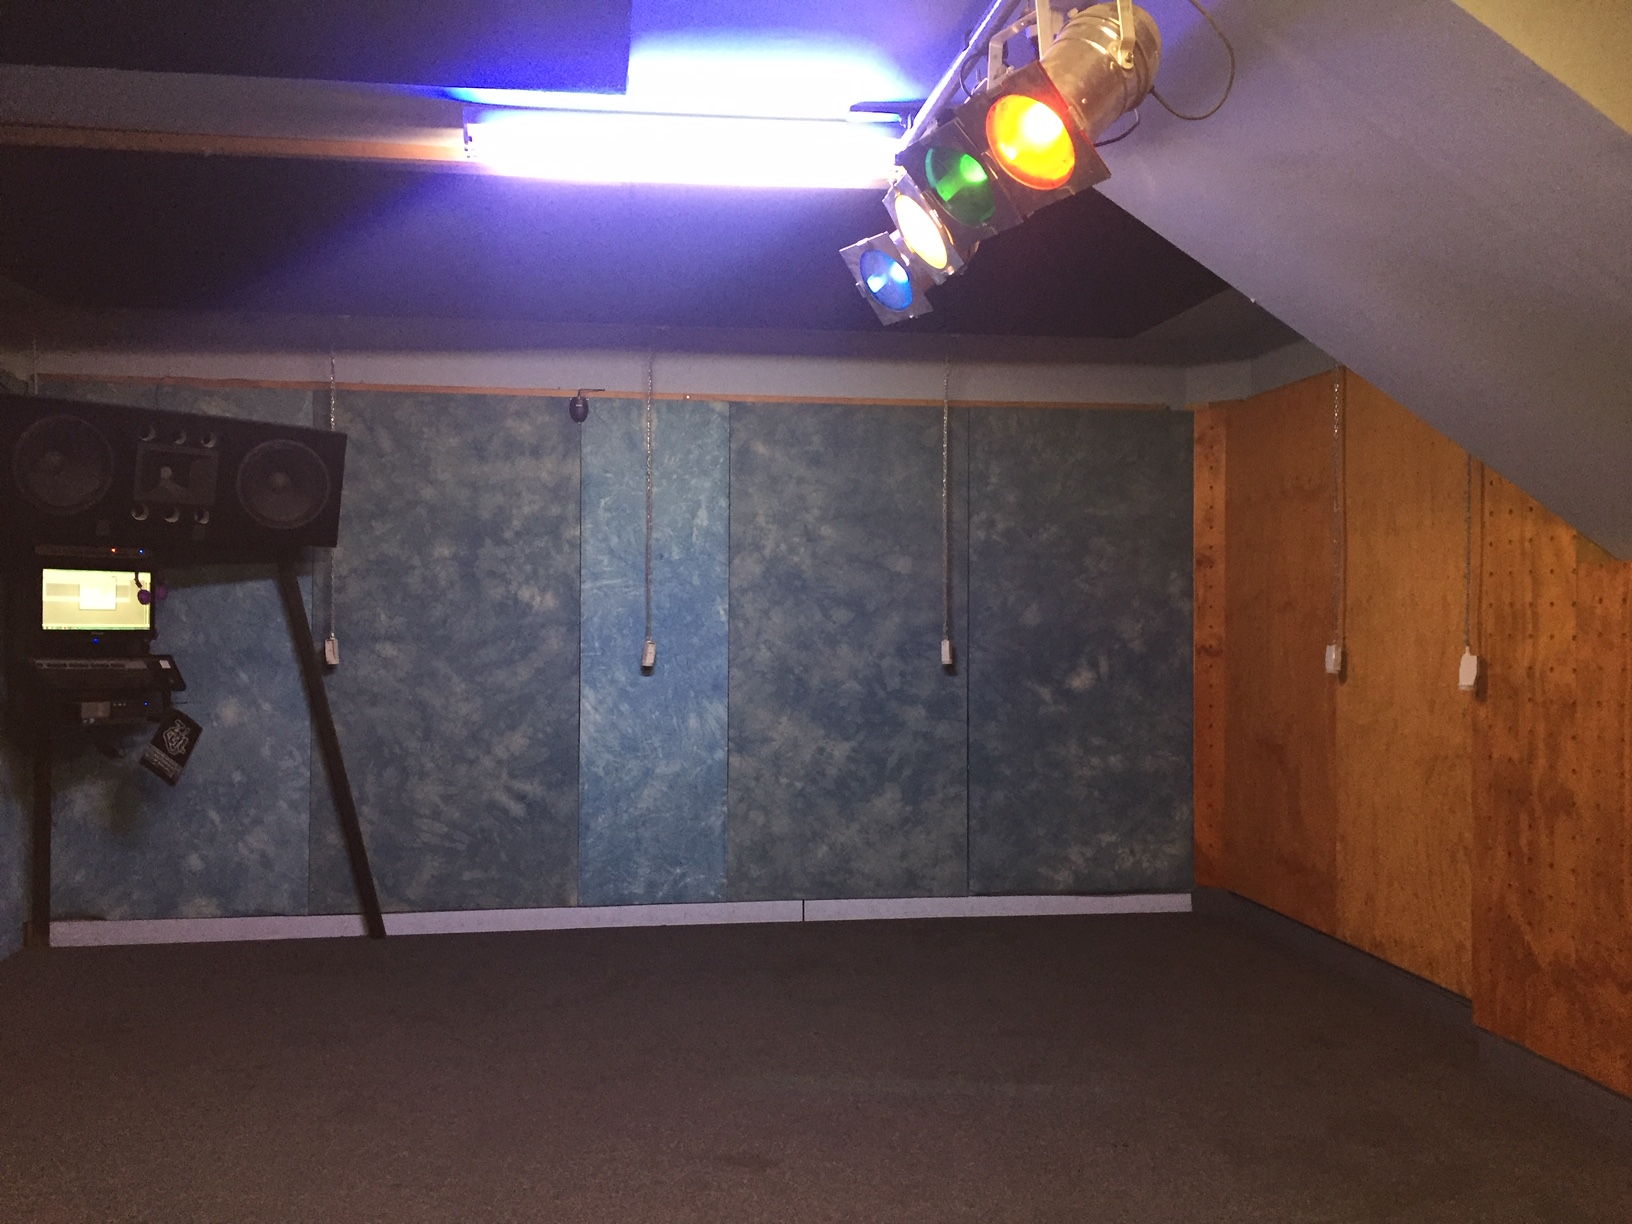 $200/day Dry Hire Film Sound Studios including lighting kit & green screen, make up room, parking, street access, 3 phase 5 pin outlet,